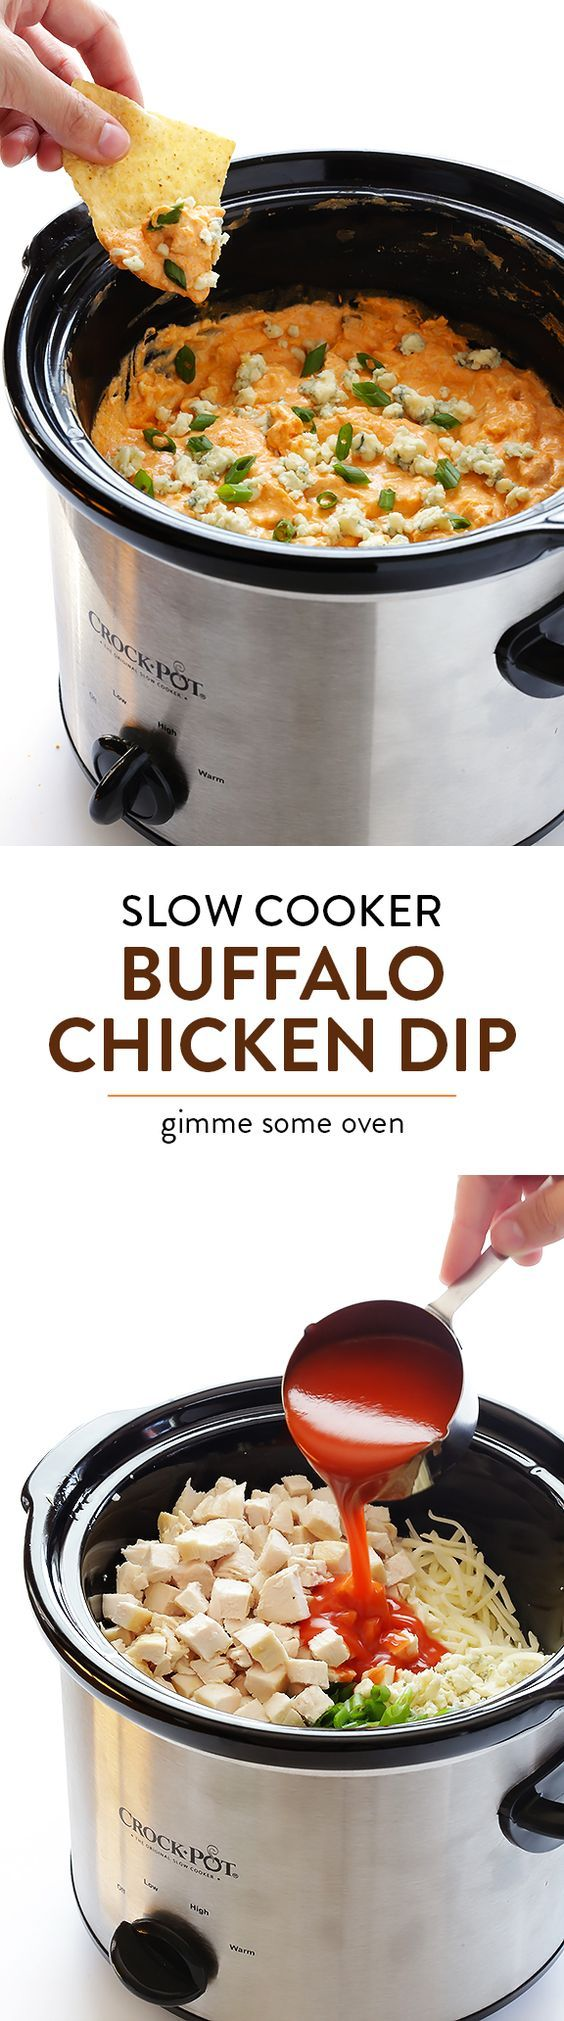 Slow Cooker Buffalo Chicken Dip Recipe plus 49 of the most pinned crock pot recipes